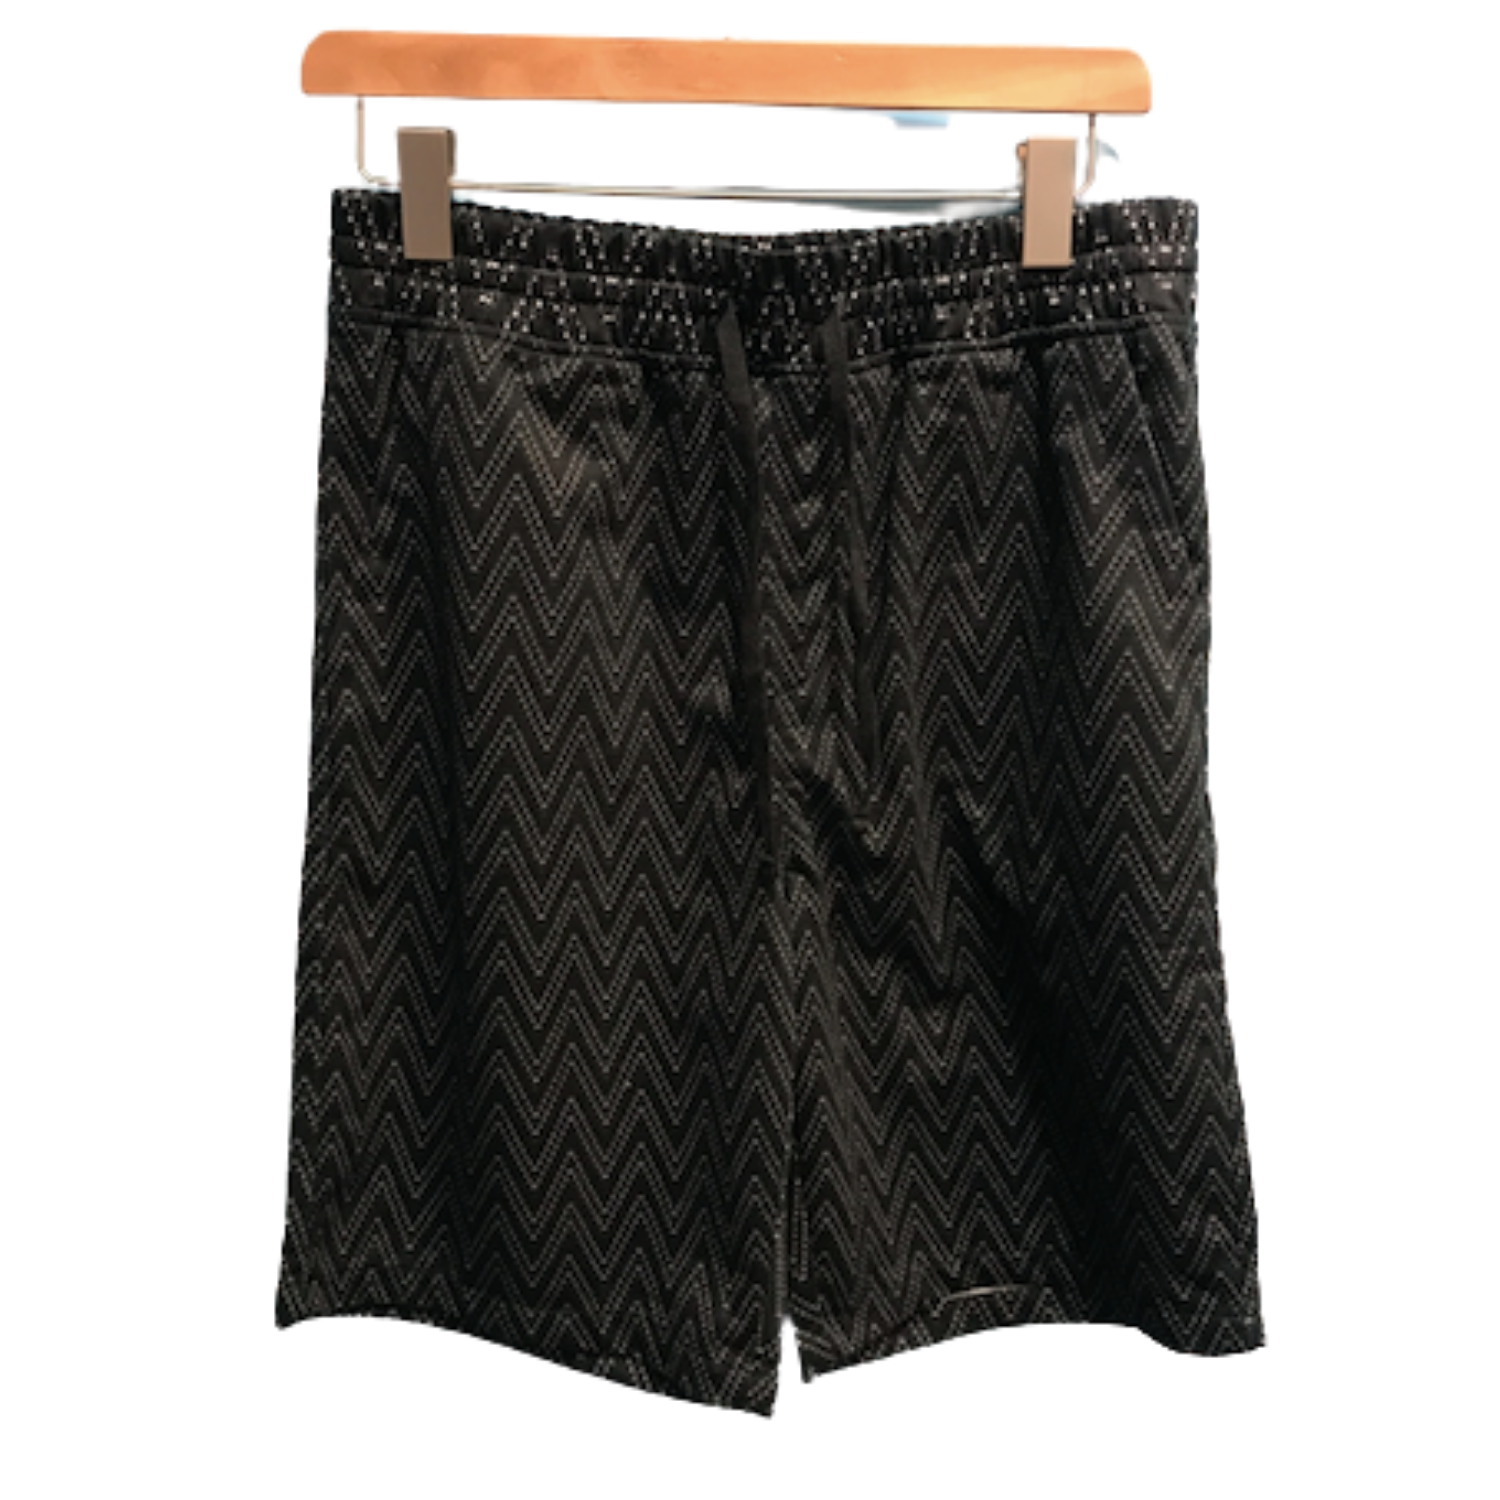 PōMahina - Men's Shorts